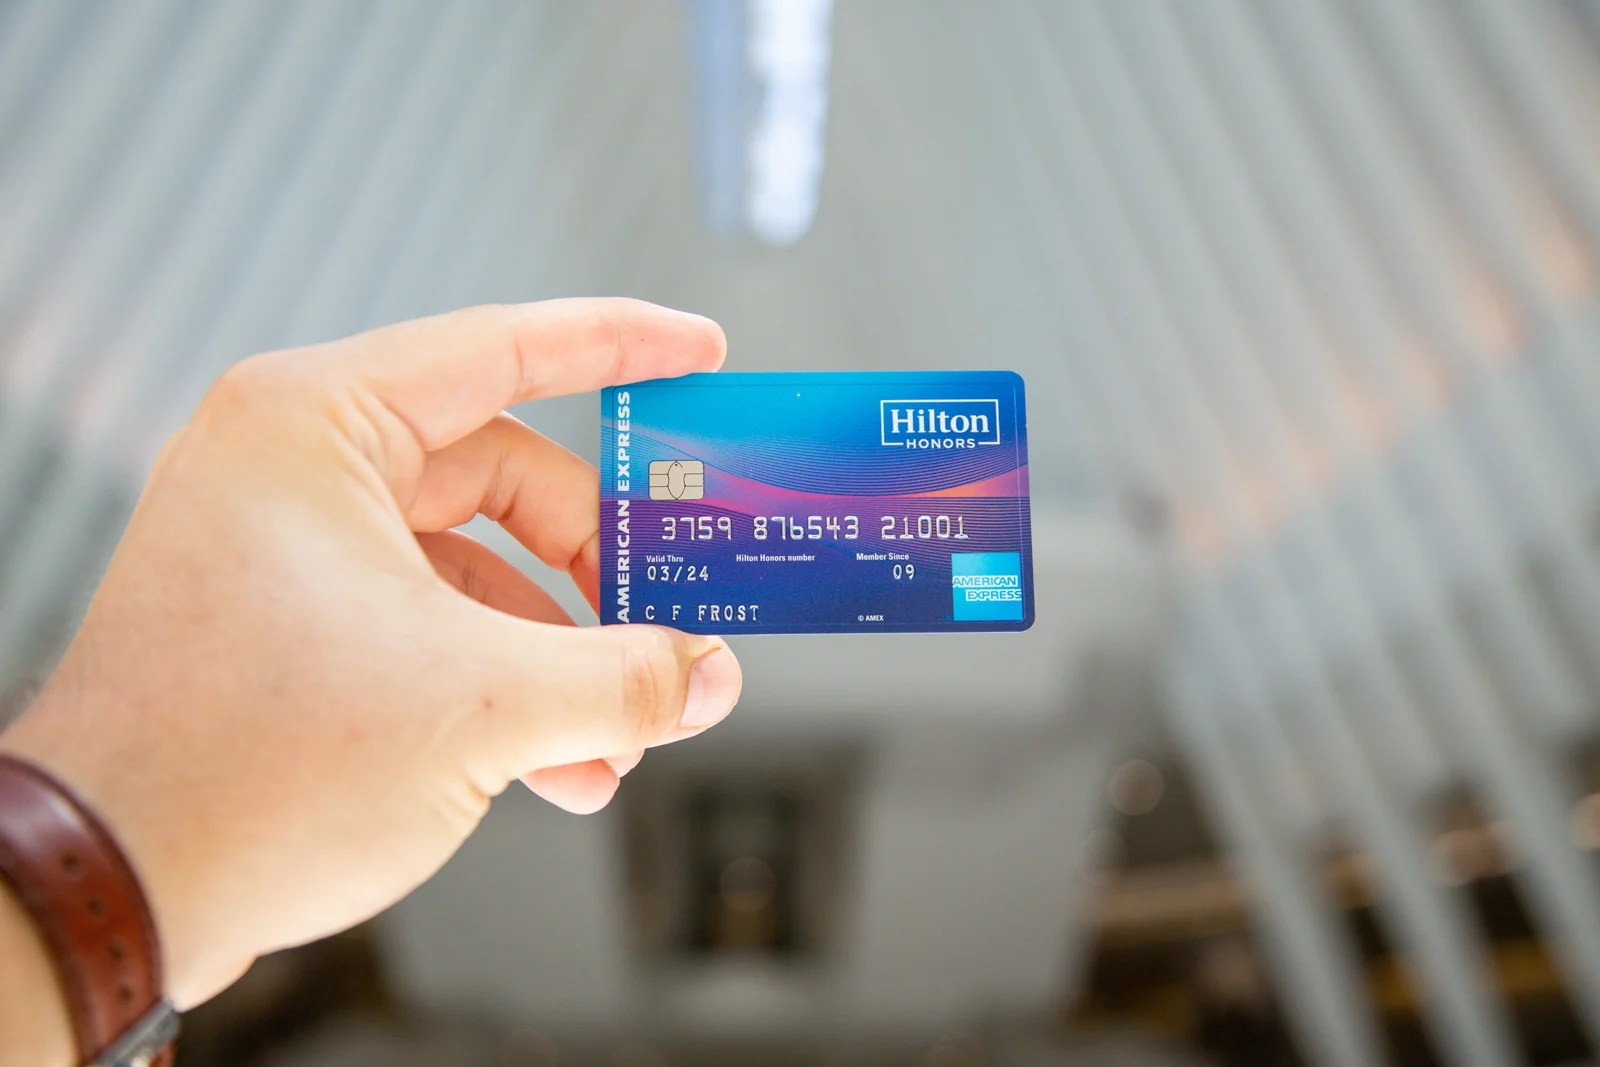 Best Hotel Credit Cards of 2019 - The Points Guy